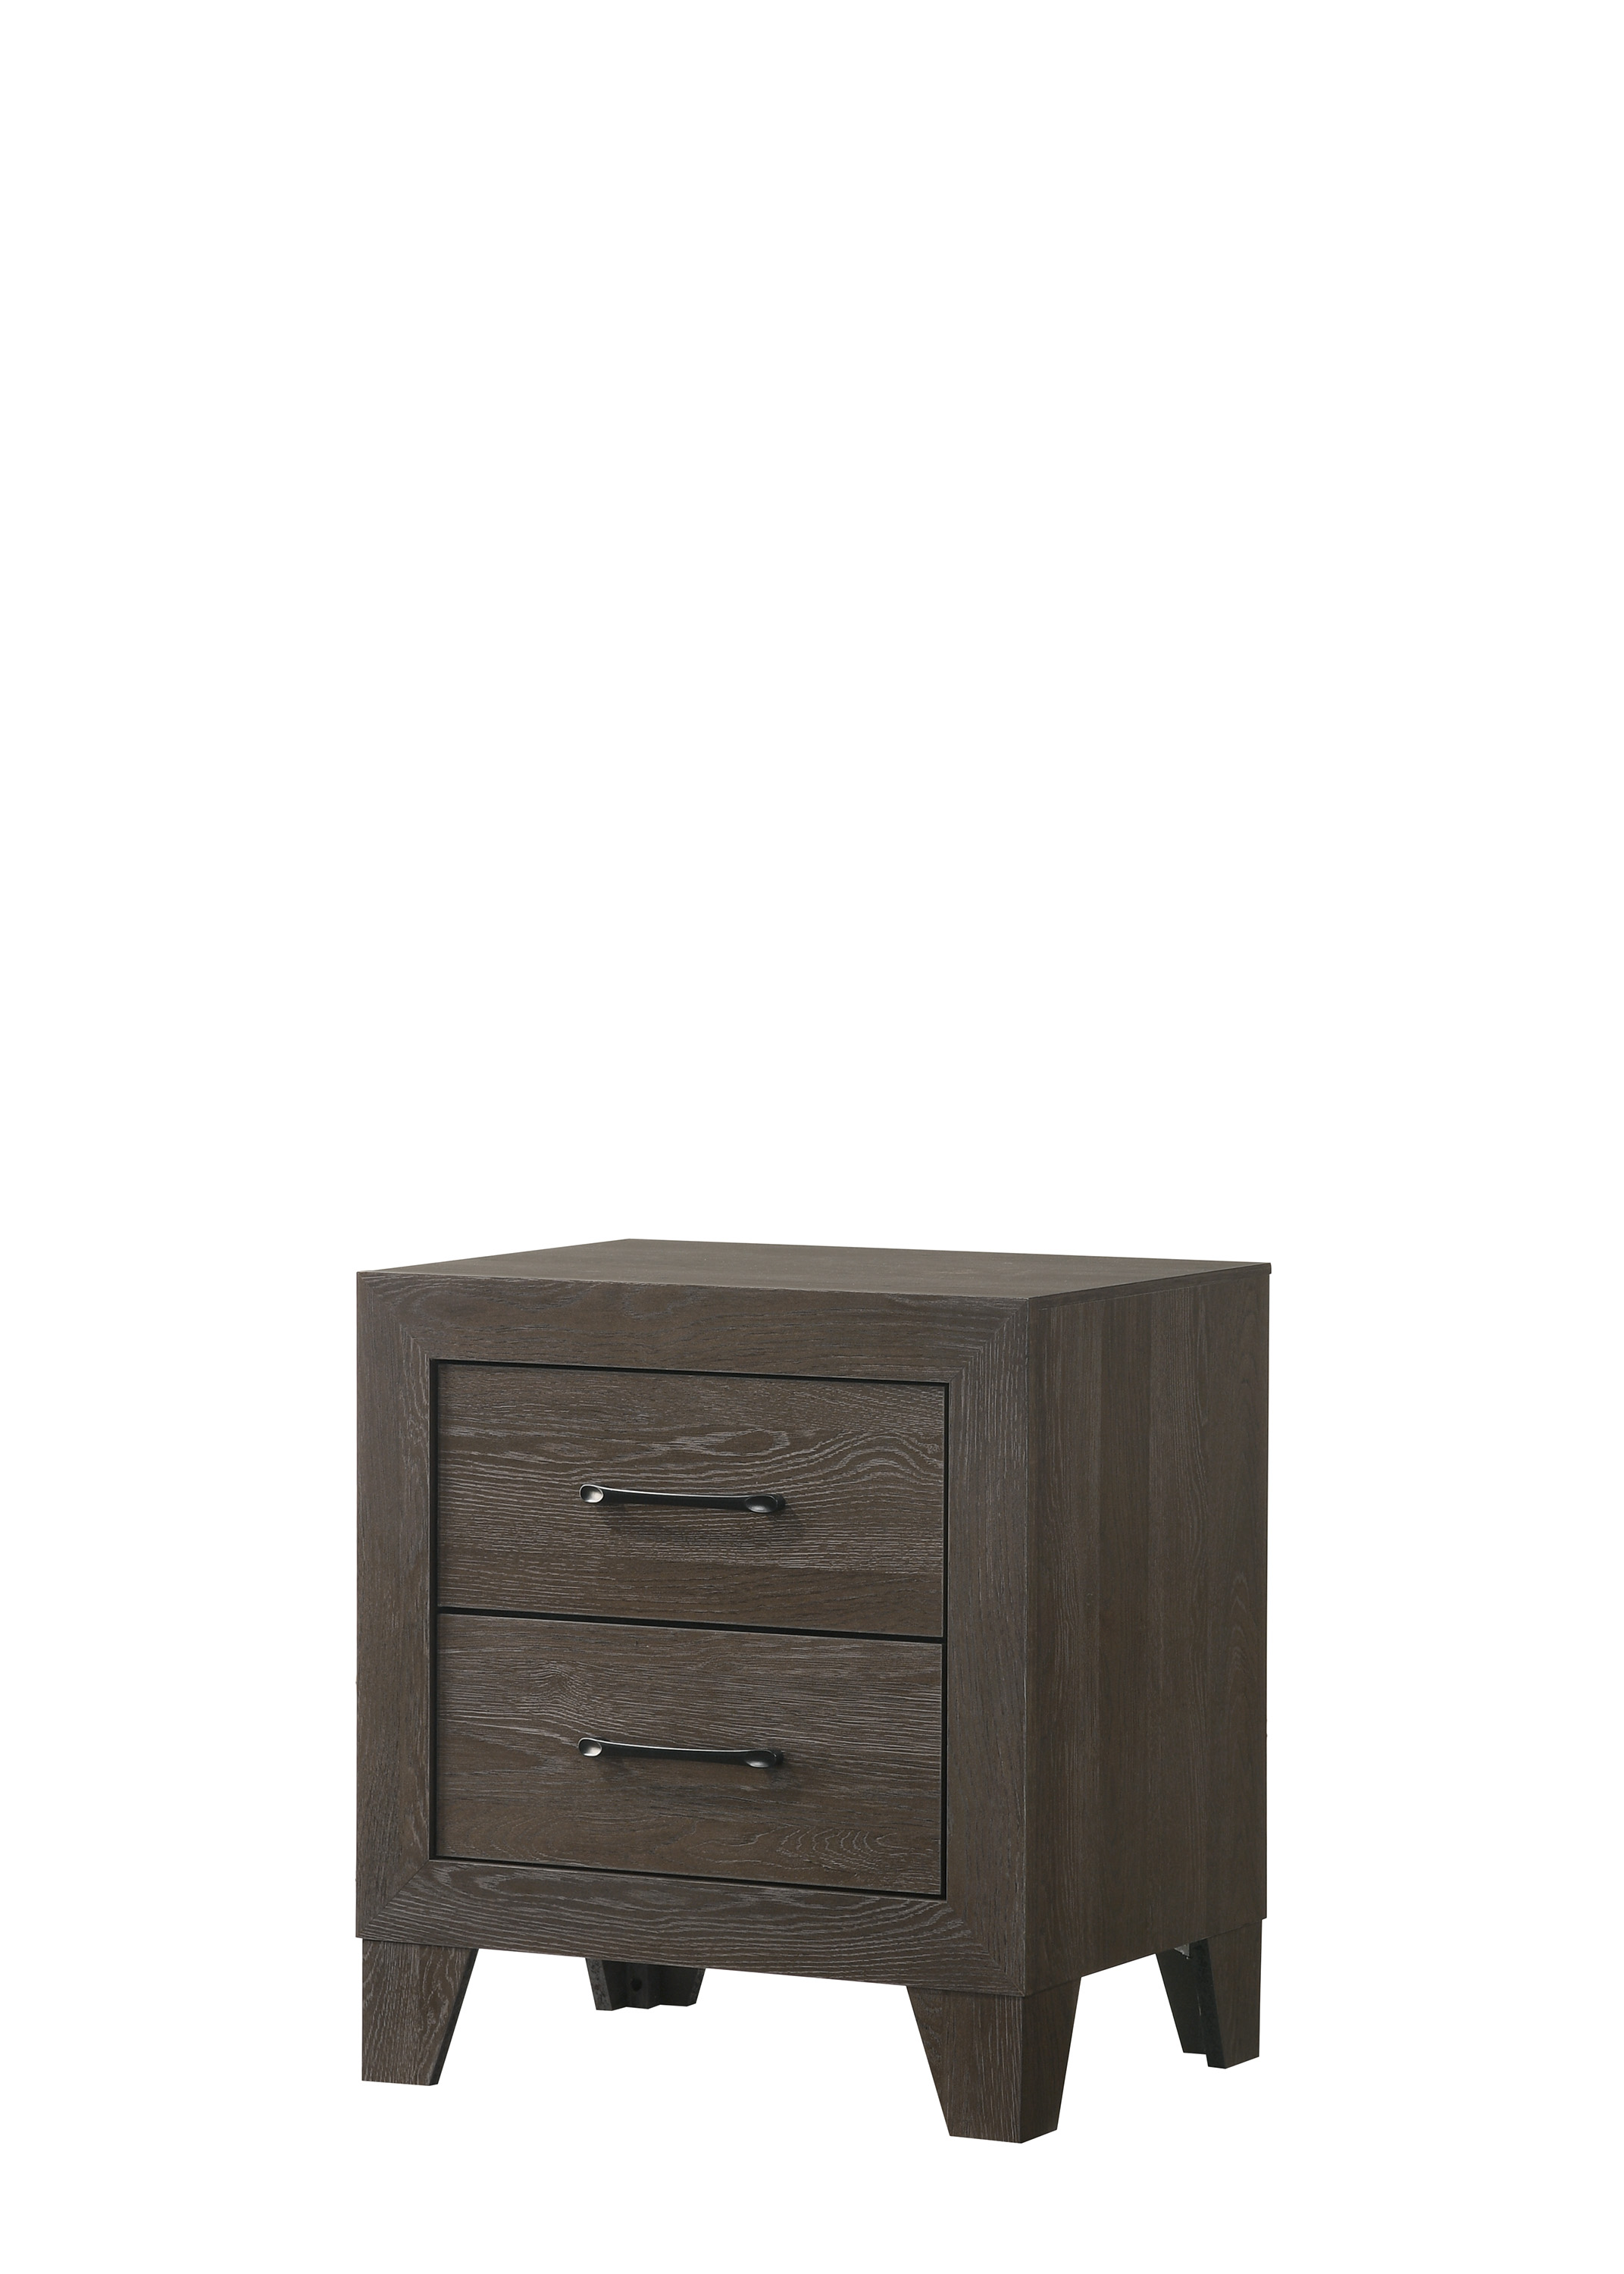 Hopkins Nightstand by Crown Mark at Catalog Outlet